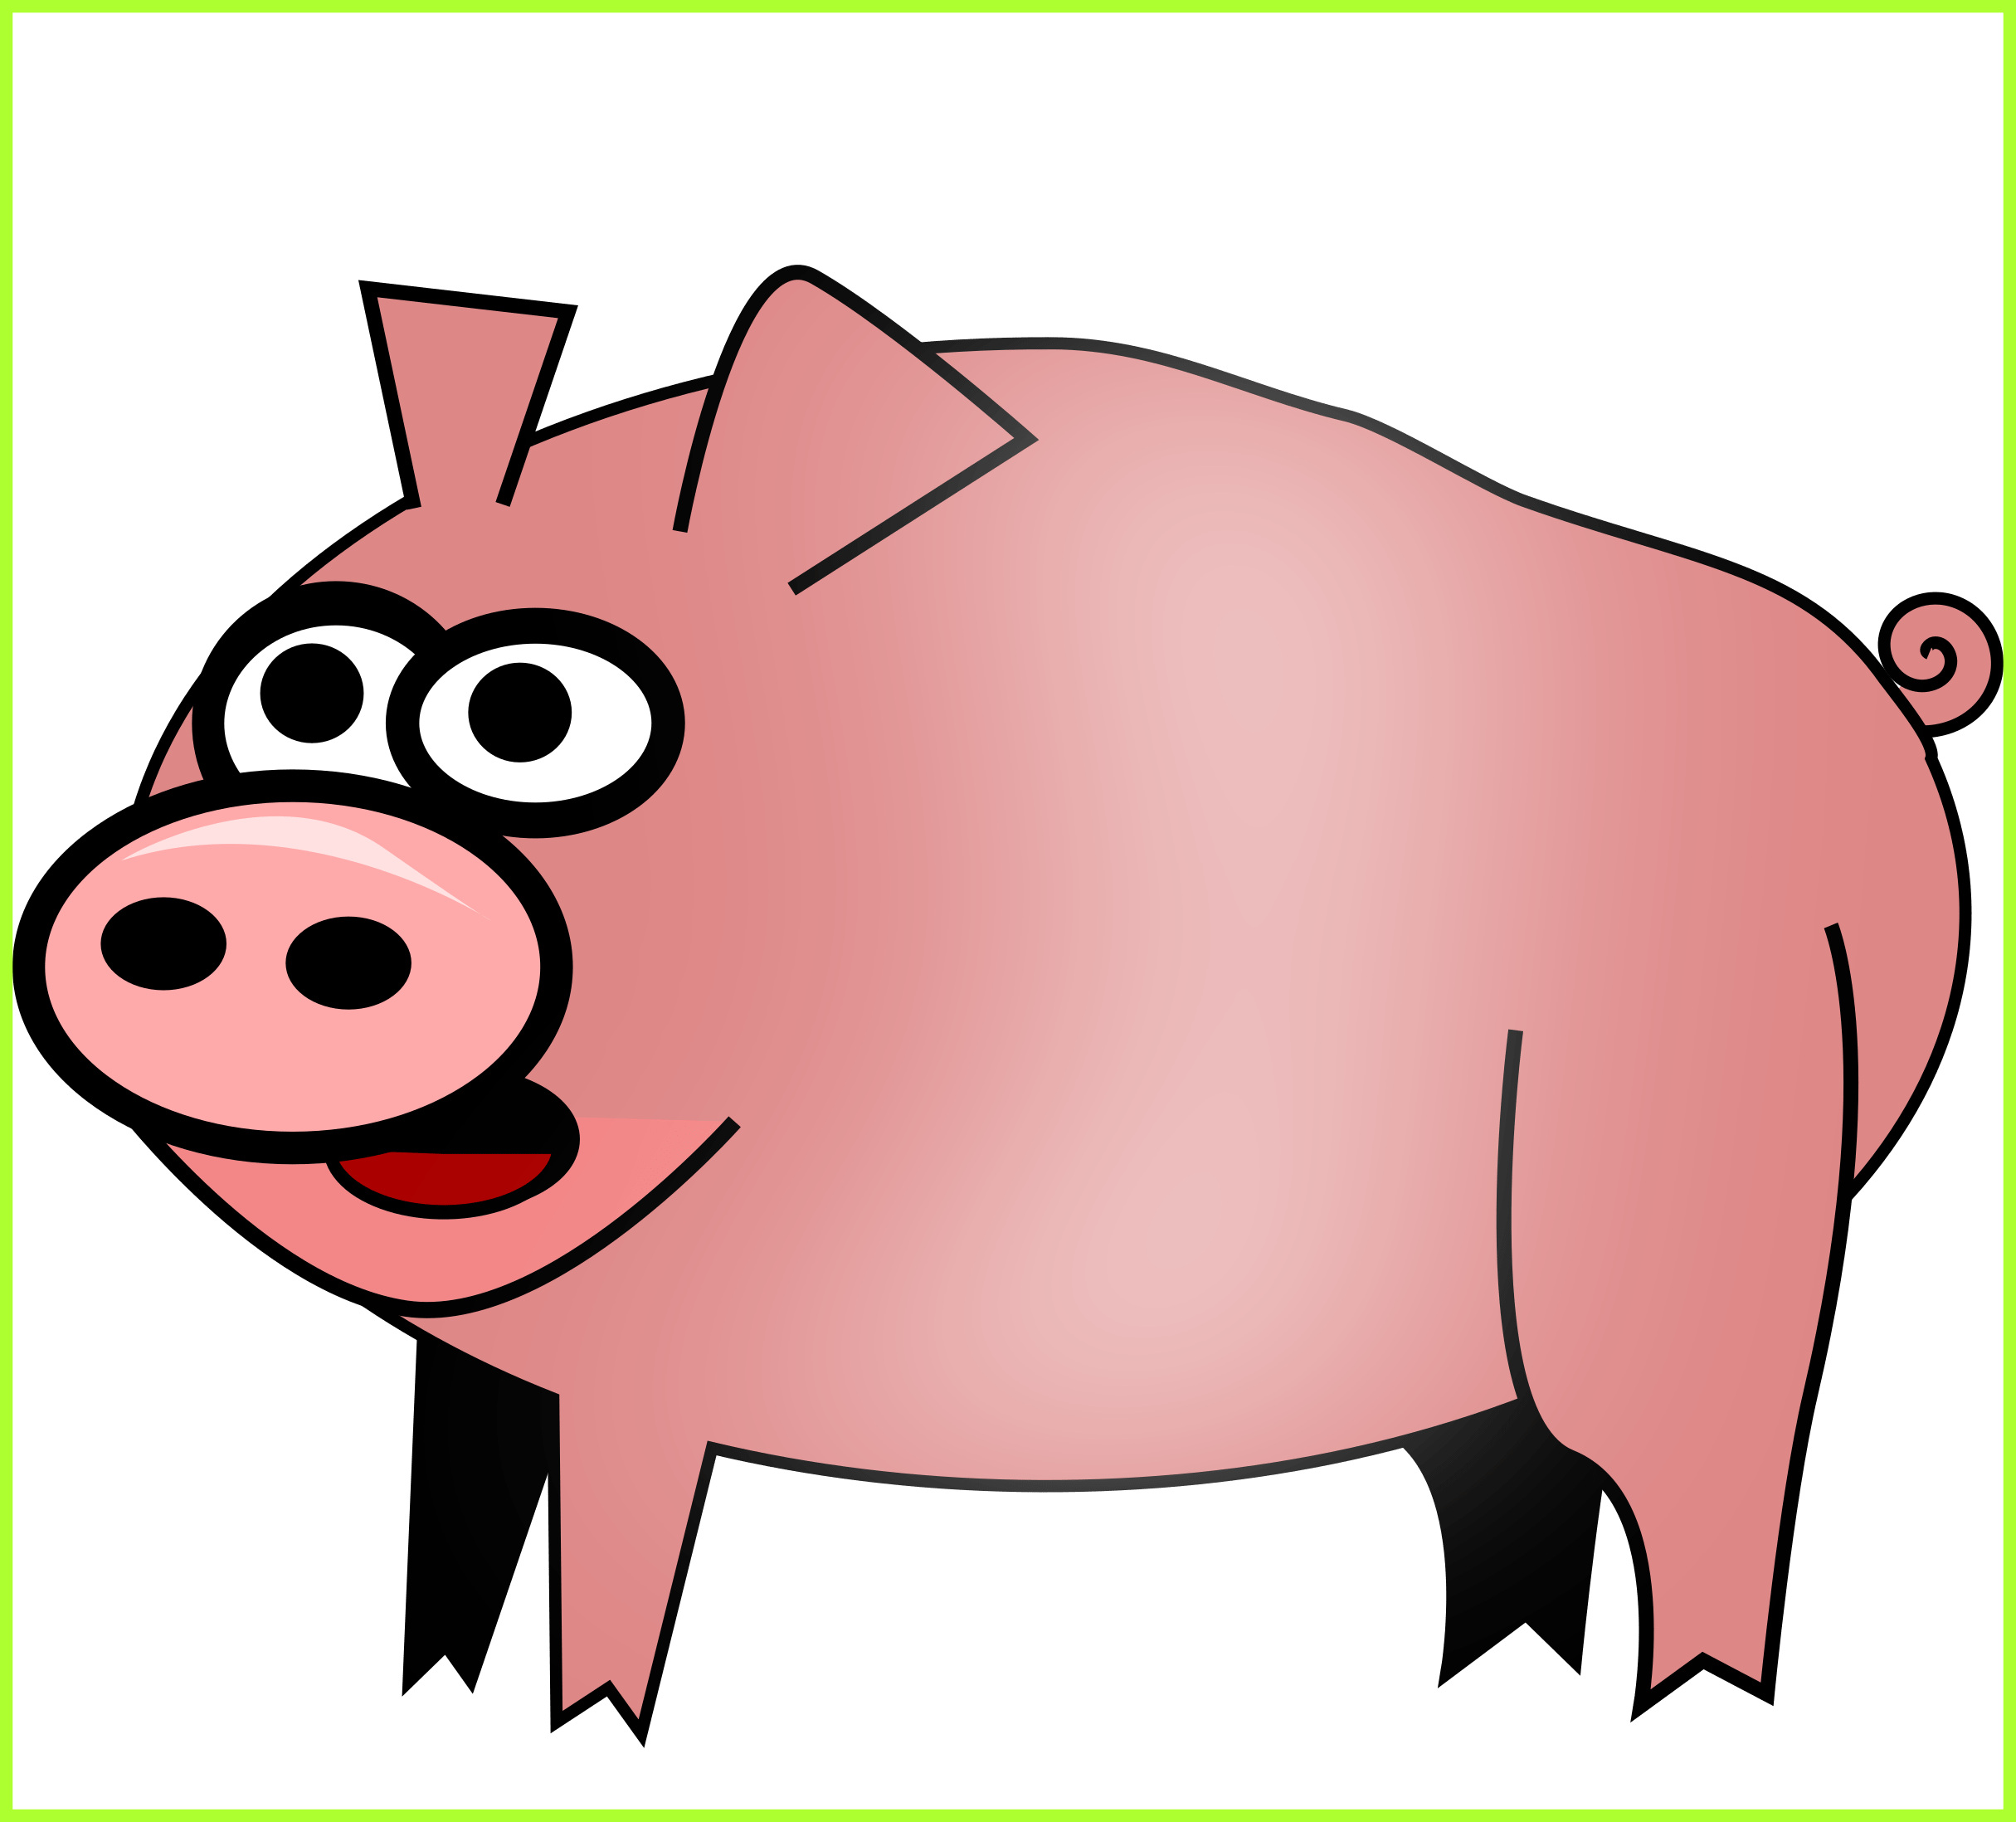 Pig halloween clipart jpg transparent stock Pig Clipart at GetDrawings.com | Free for personal use Pig Clipart ... jpg transparent stock